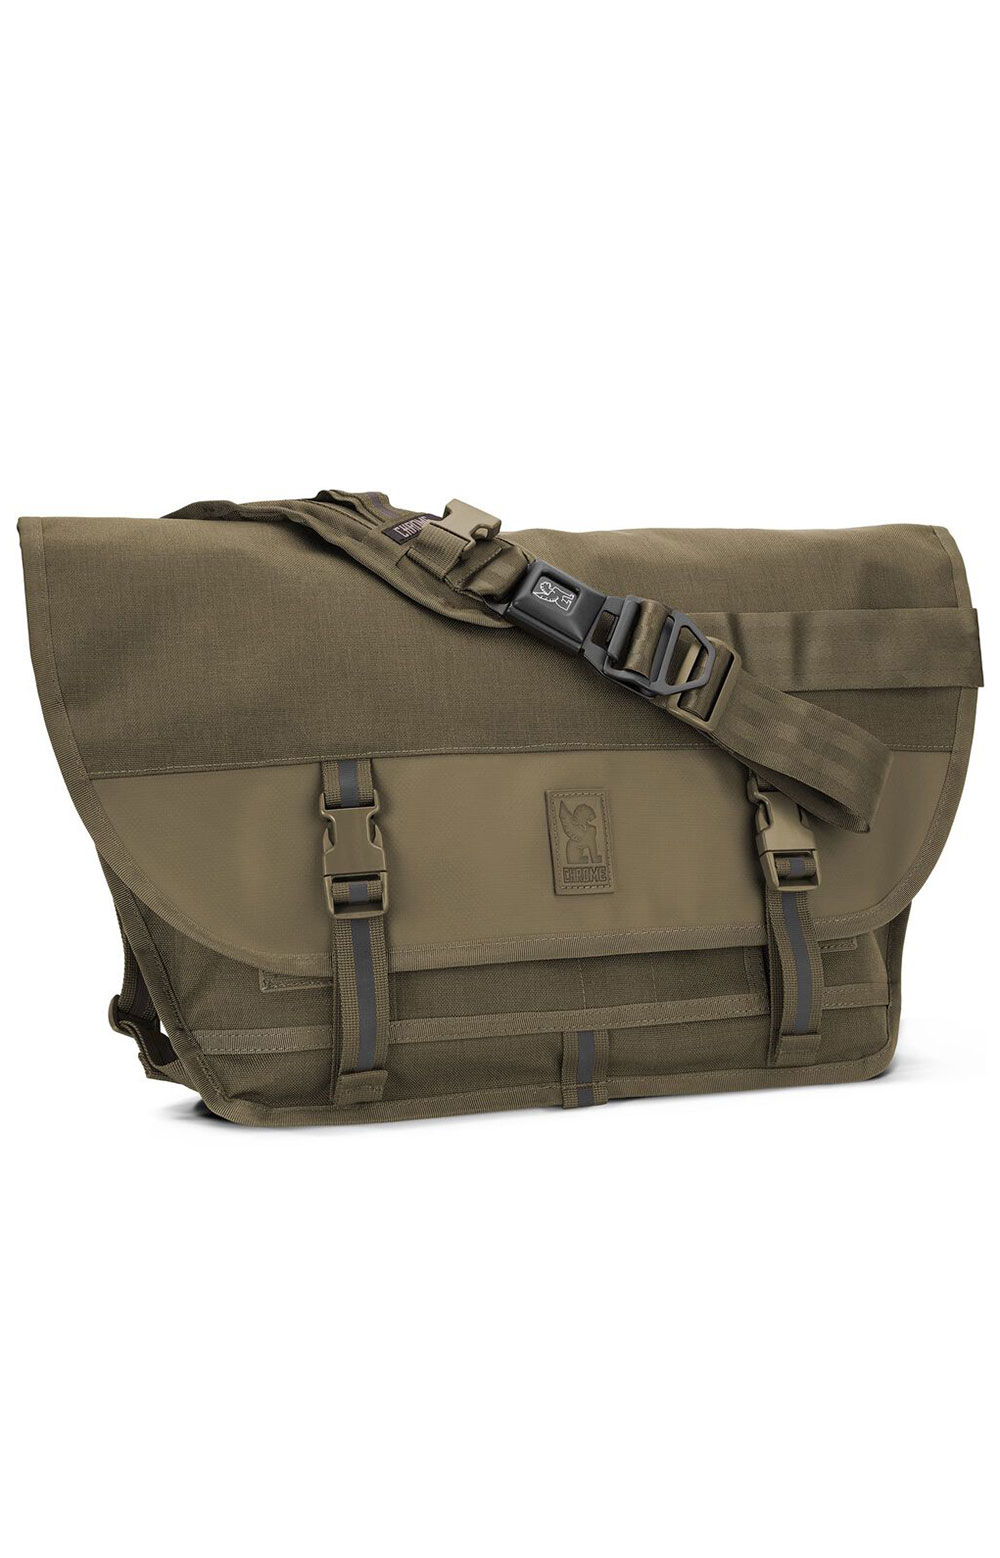 (BG-002-RGTO) Citizen Messenger Bag - Ranger Tonal